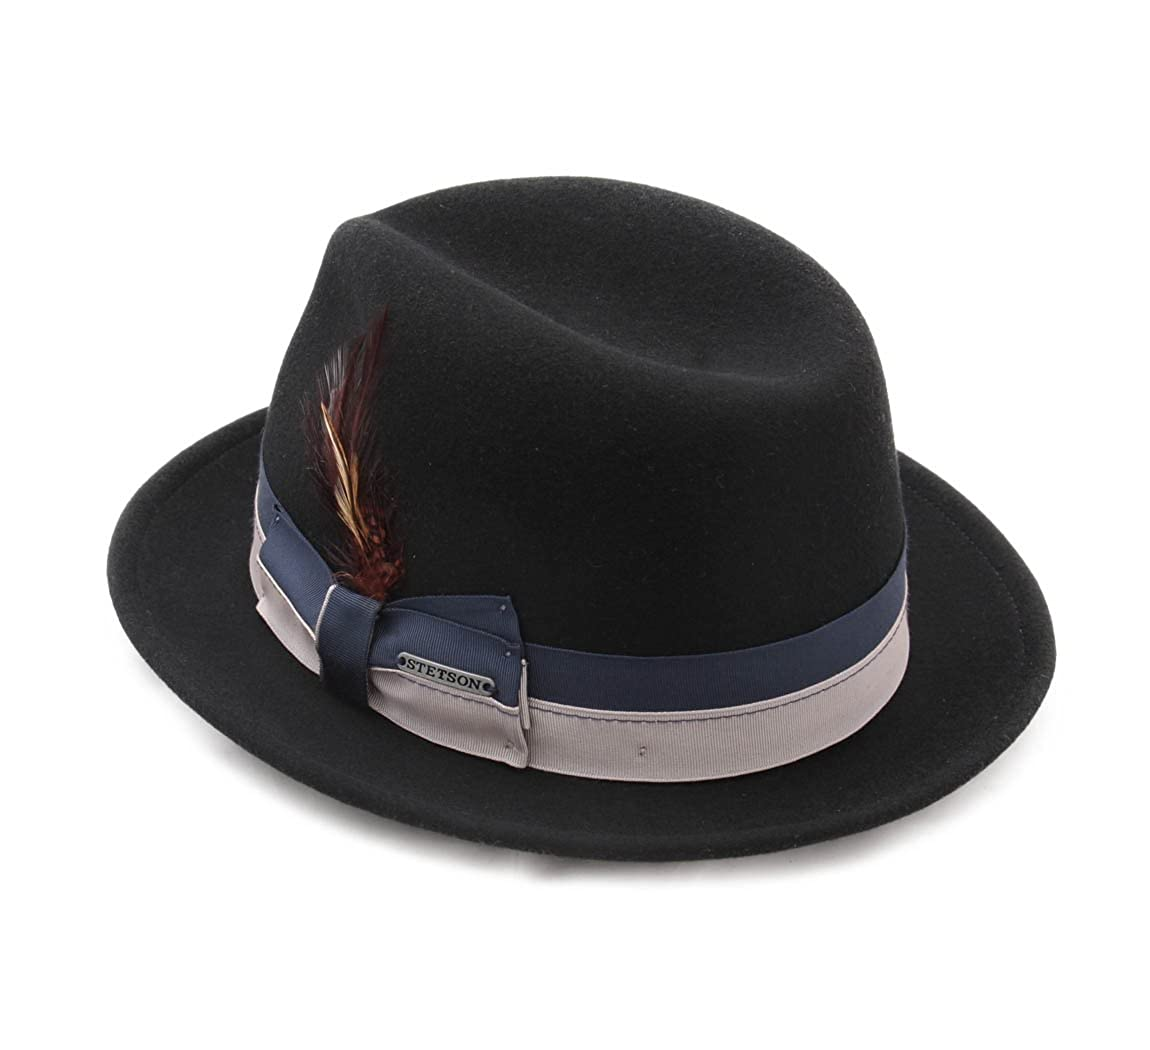 Stetson Manhattan VitaFelt Wool Felt Trilby Hat Packable Water Repellent